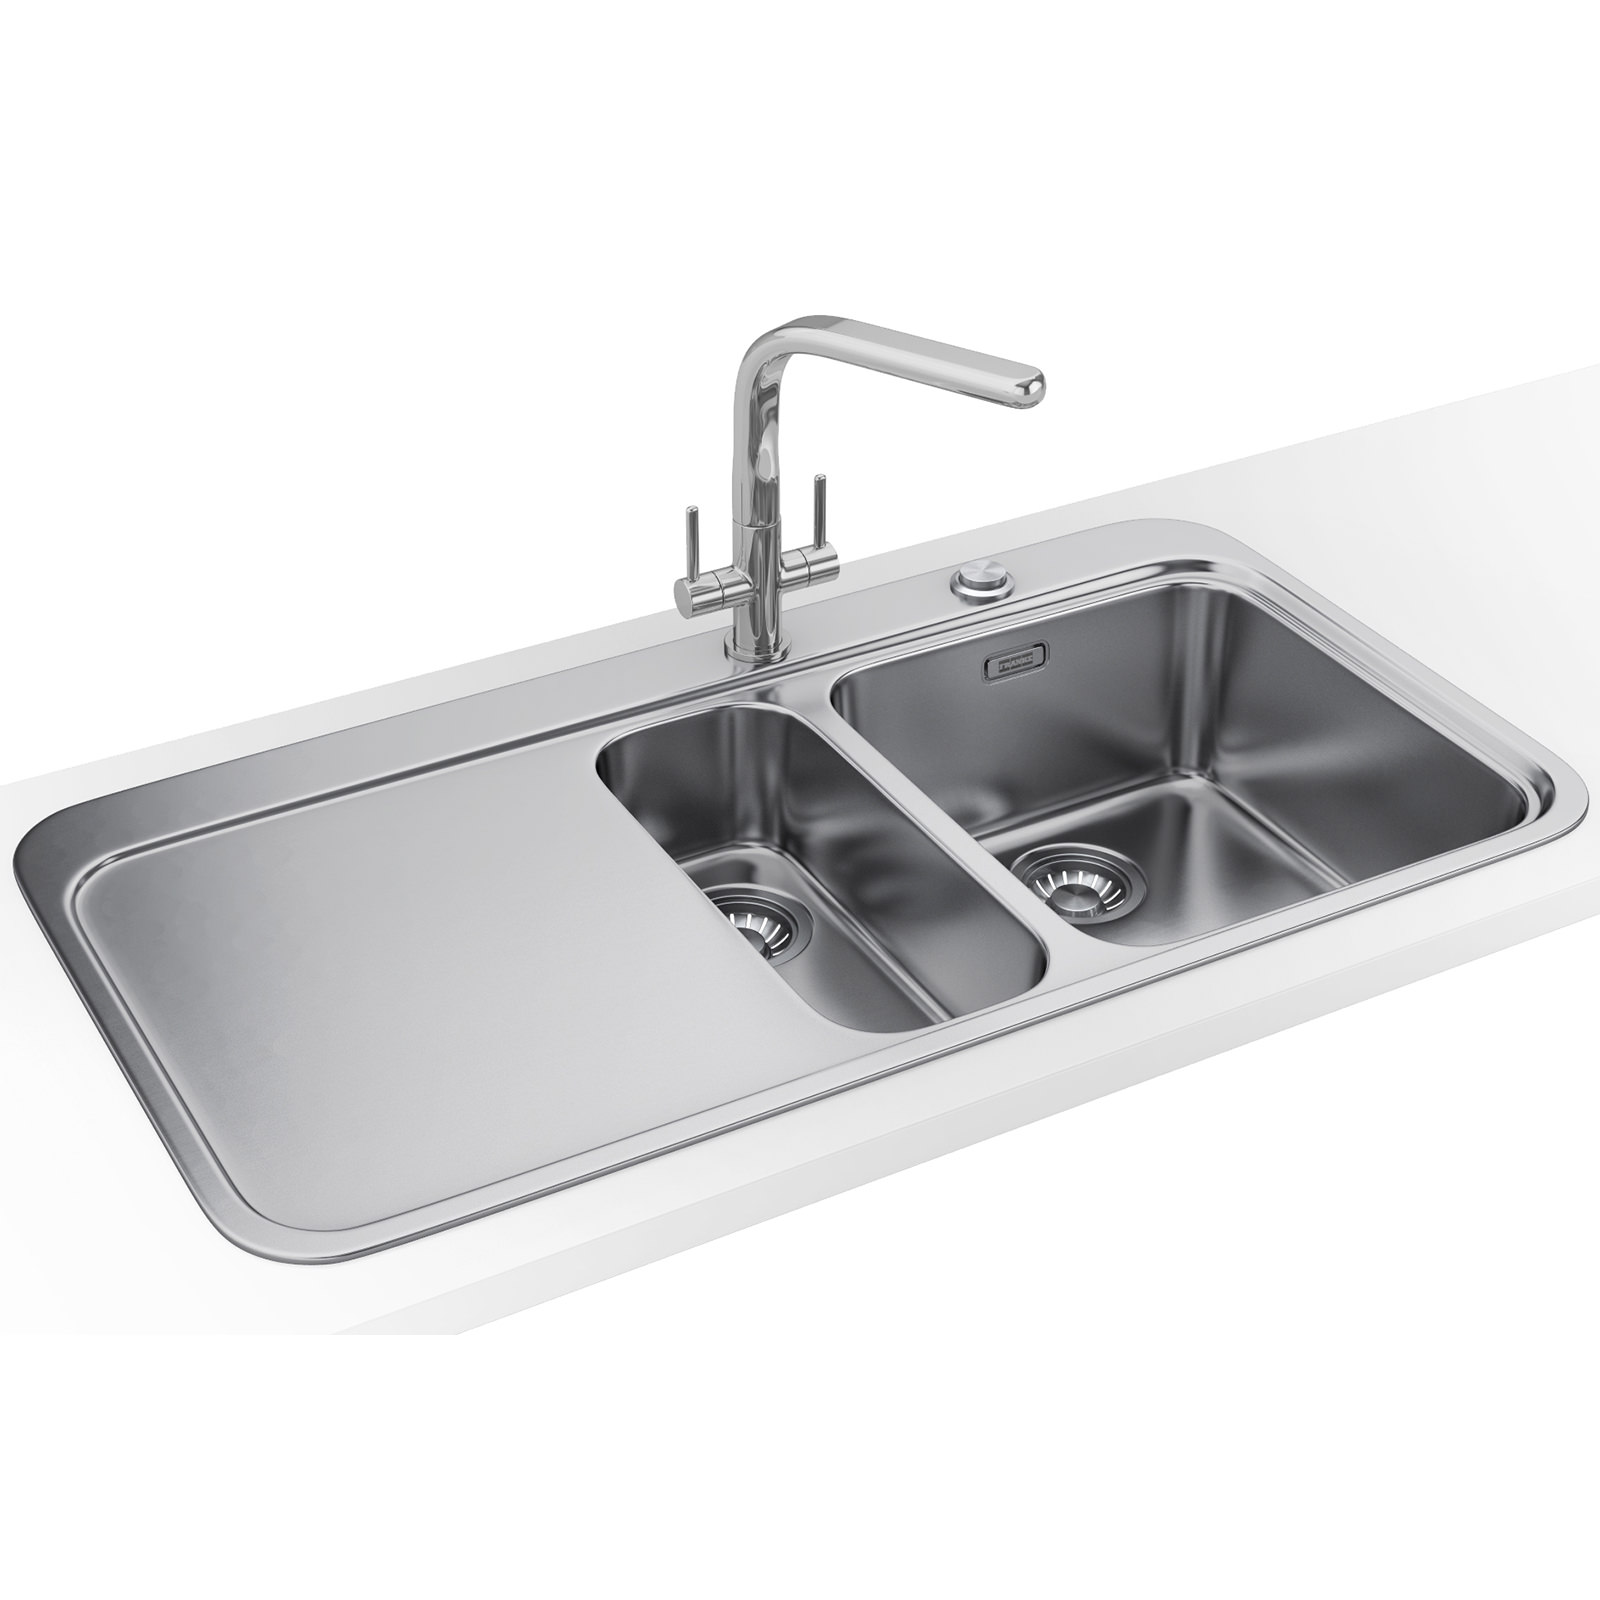 Franke Sinos SNX 251 DP - Stainless Steel 1.5 Bowl LHD Sink And Tap